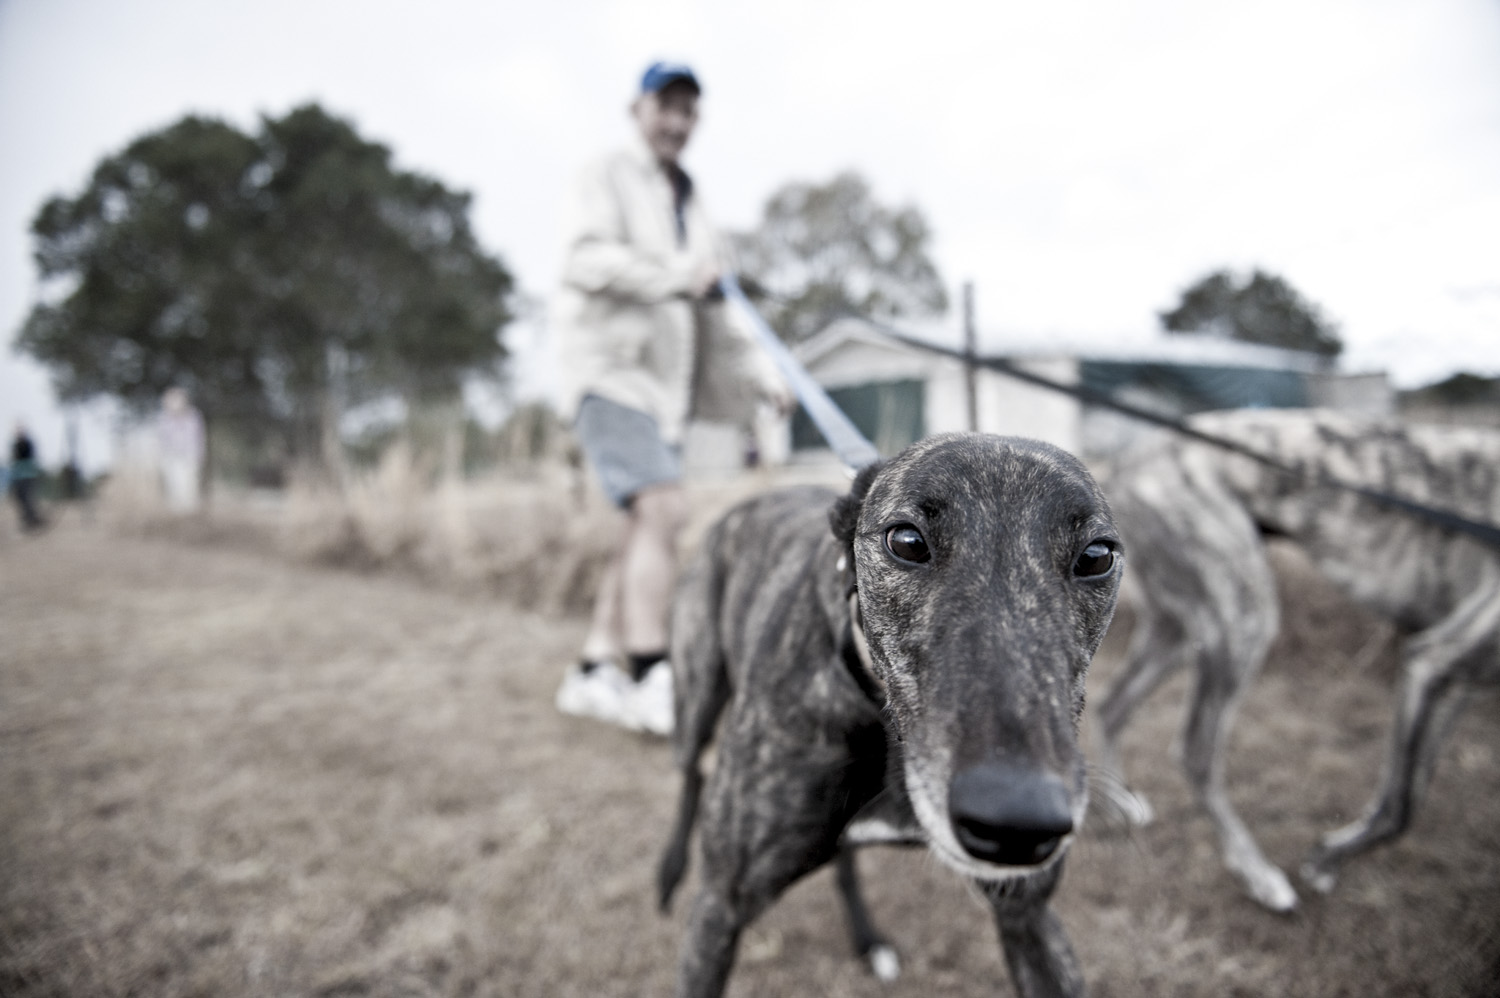 image of AARONTAIT COPYRIGHTED 2014 437 DOCUMENTARY PHOTOGRAPHER REPORTAGE LIFE SPORT DOGS GREYHOUND RACING STORY HUMAN DISHLICKER DISH LICKER WOOF